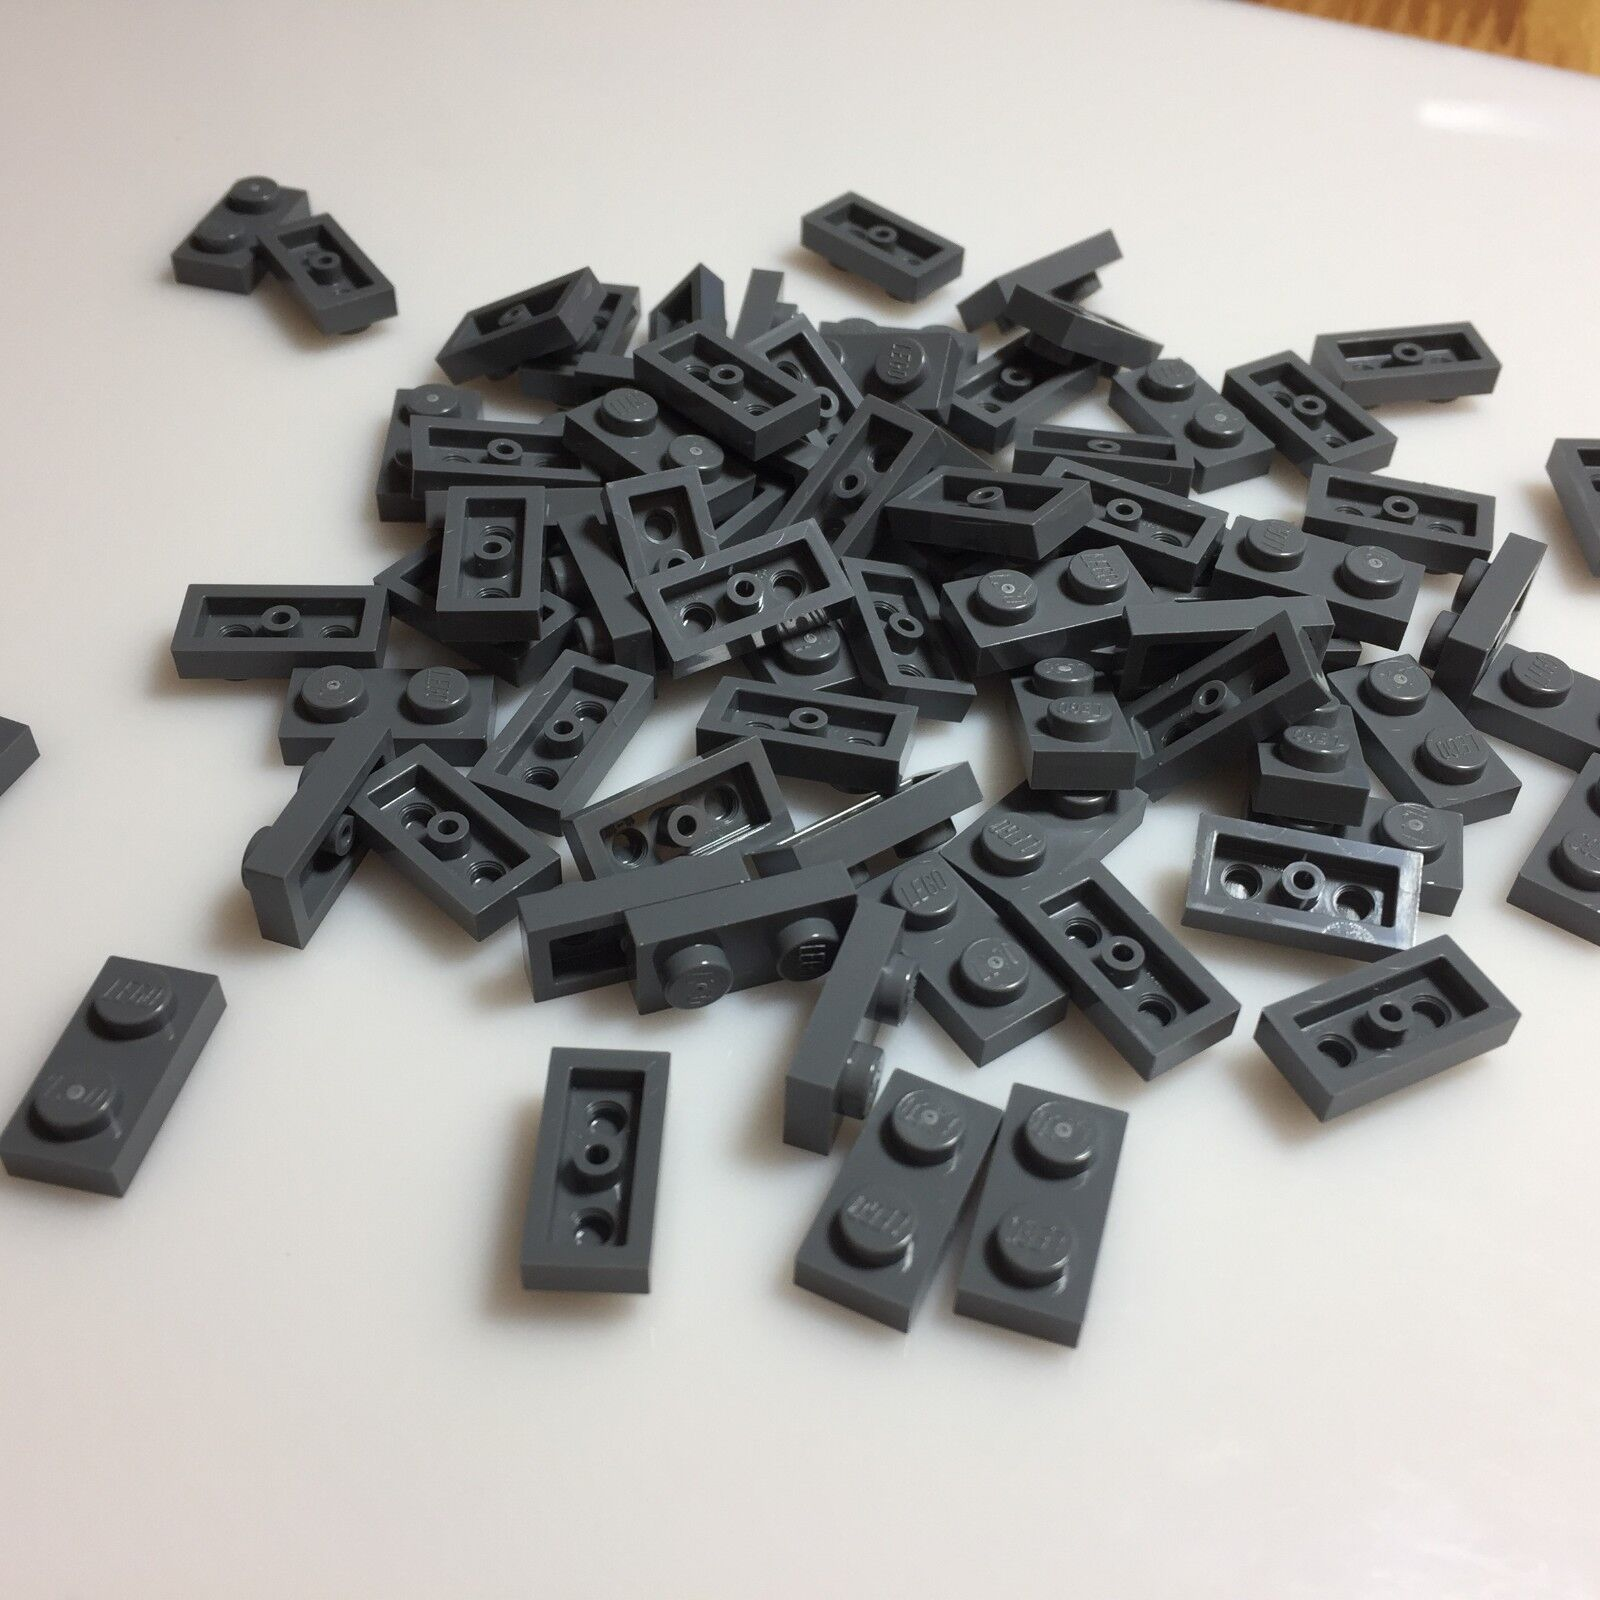 4211088 Brick 3004 LEGO NEW 1x2 Dark Stone Grey Brick 10x